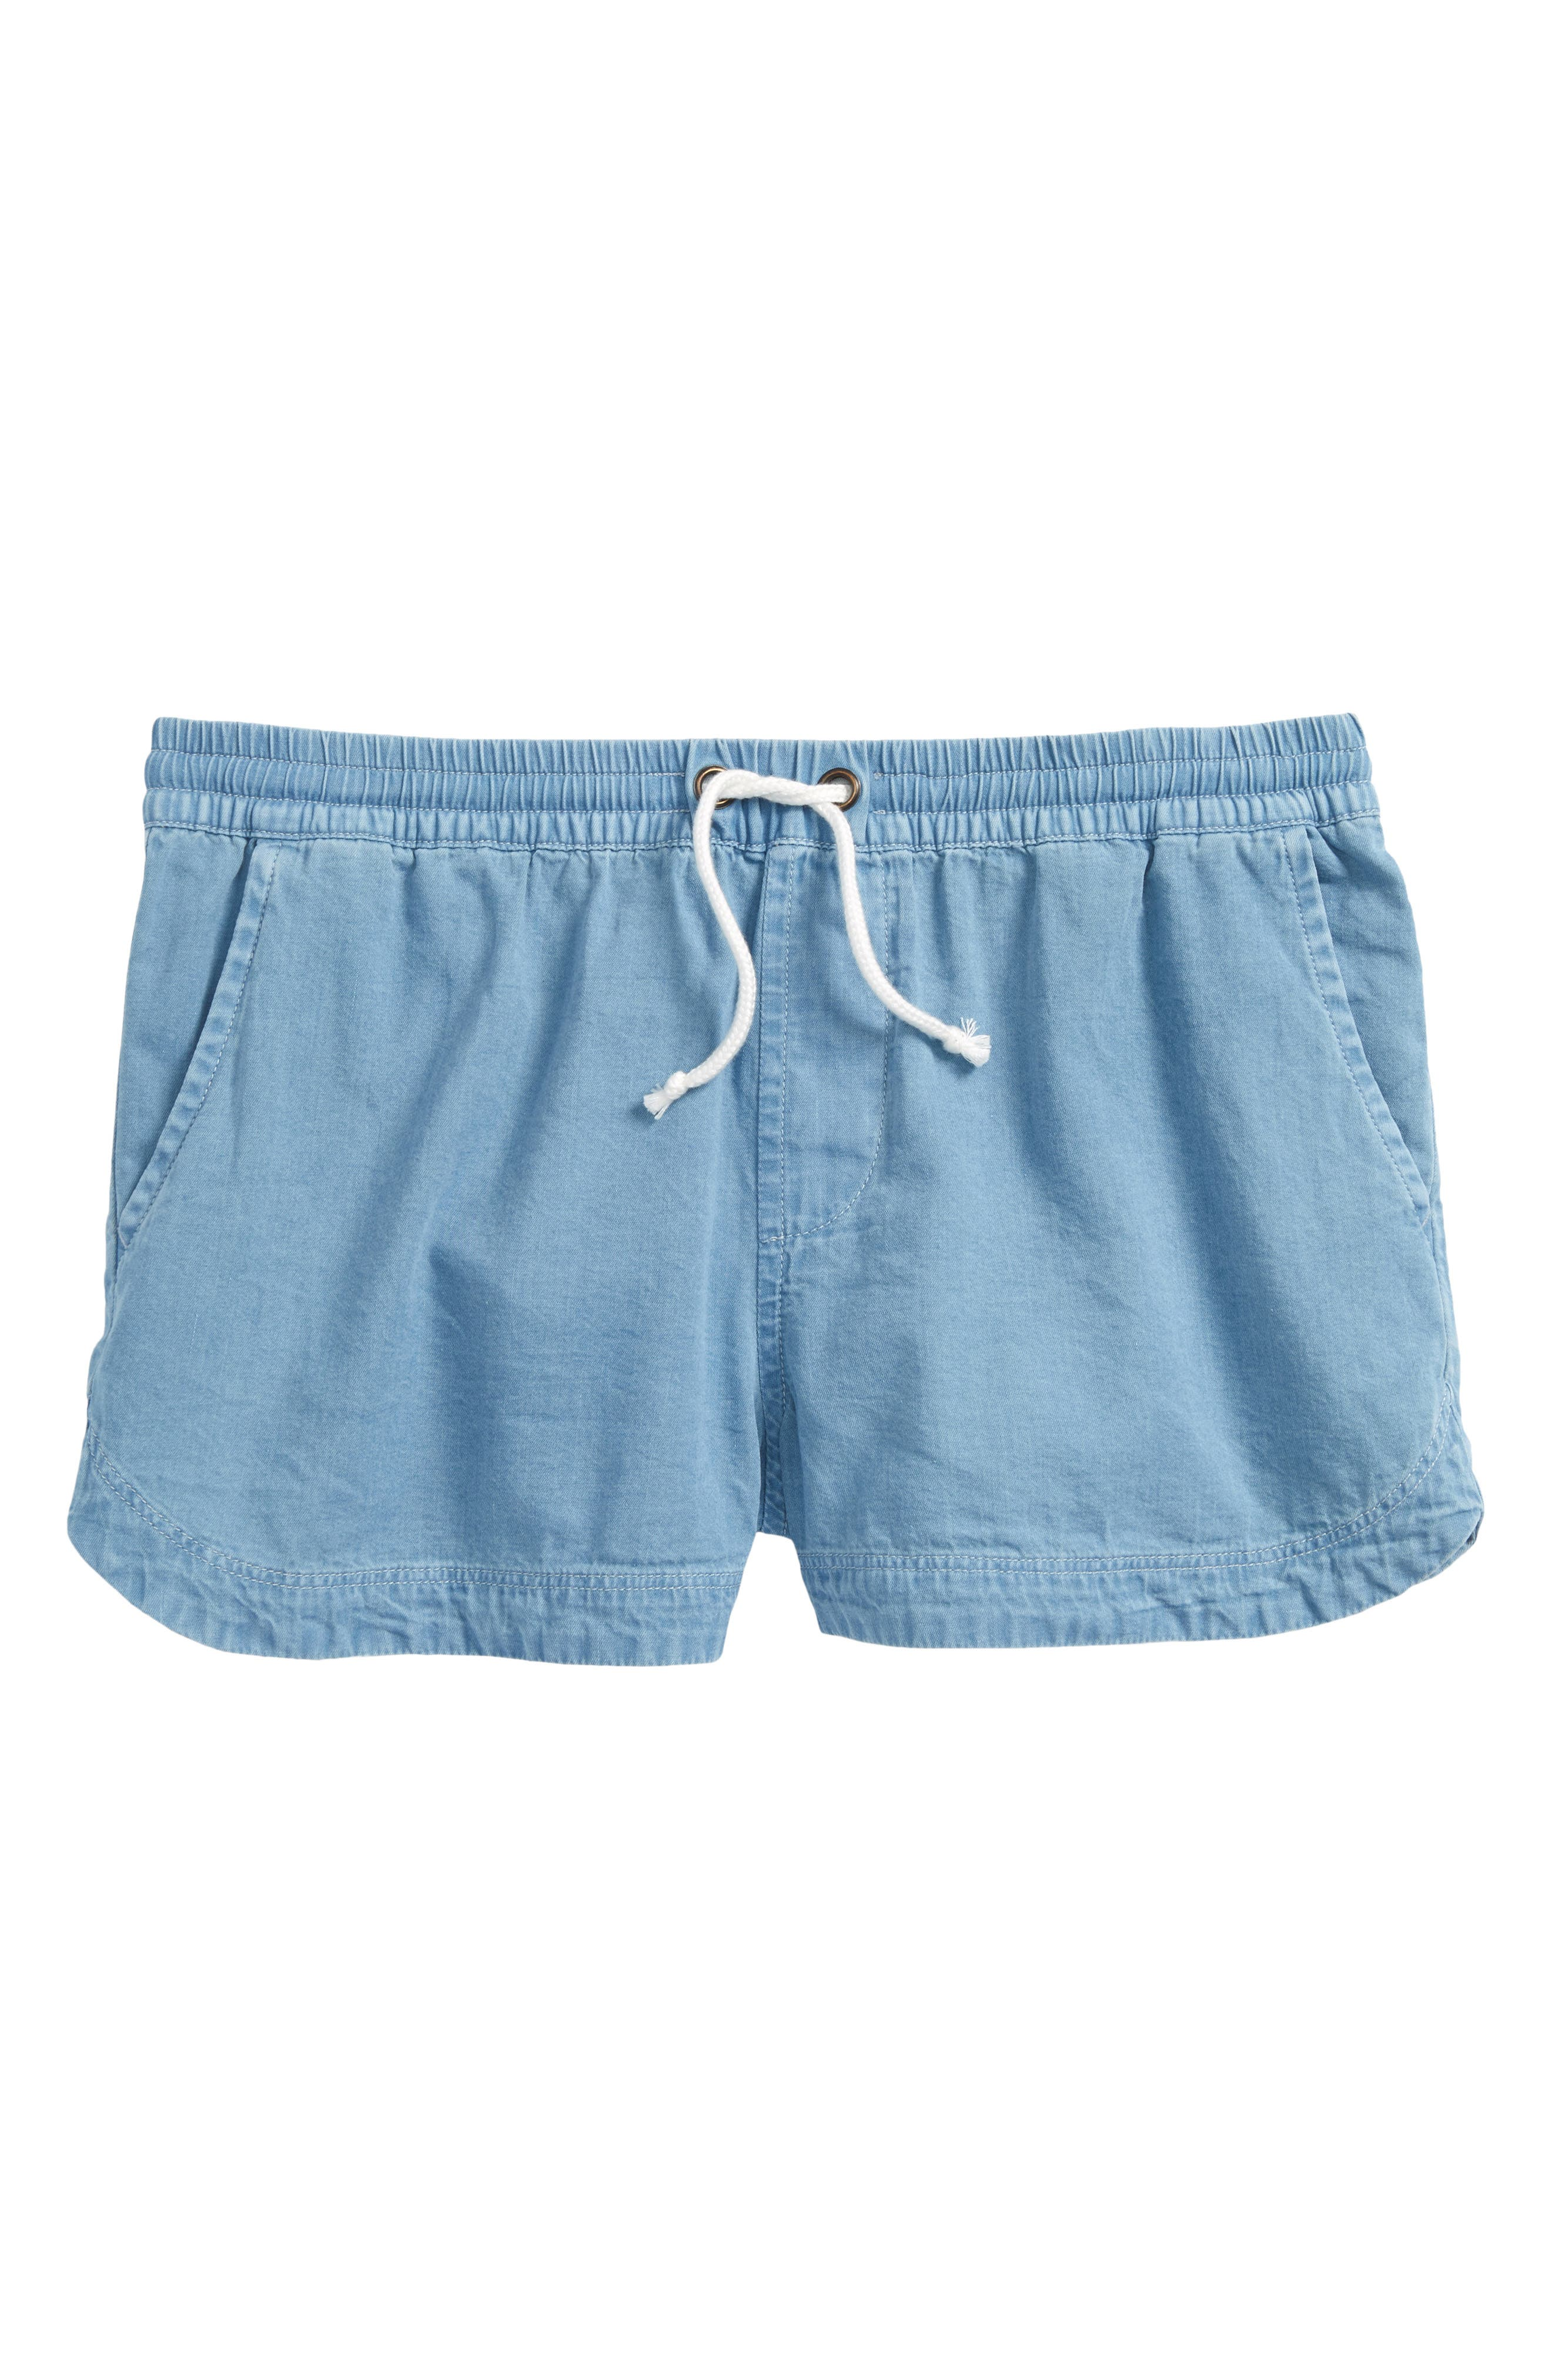 Tucker + Tate Easy Shorts (Big Girls)